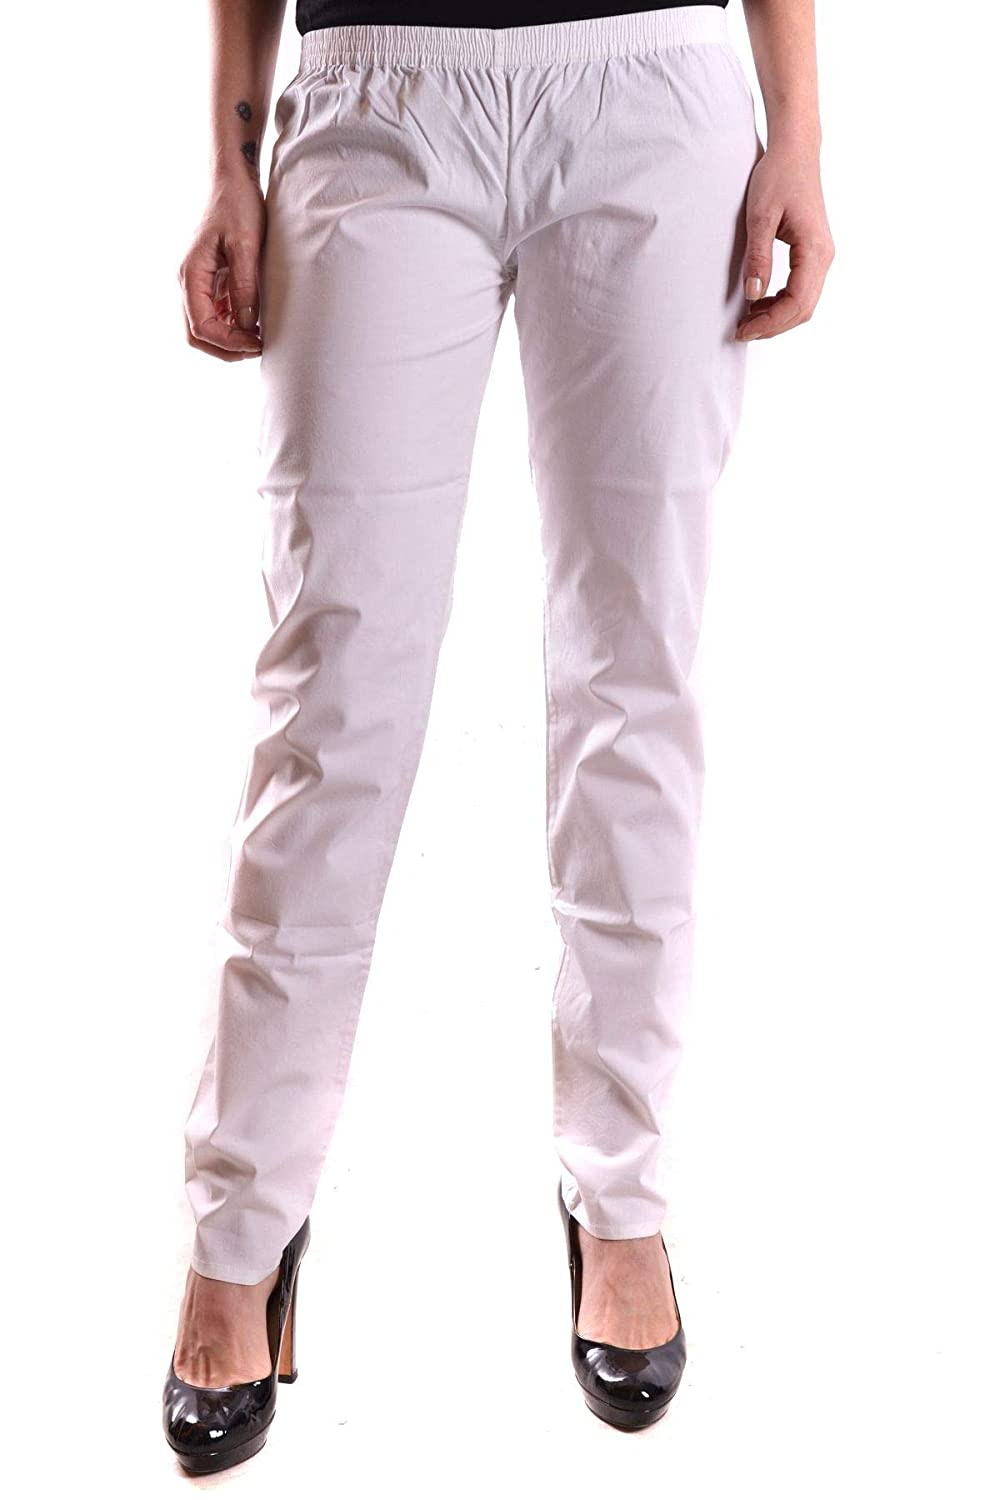 TwinSet Women's MCBI22596 White Cotton Pants